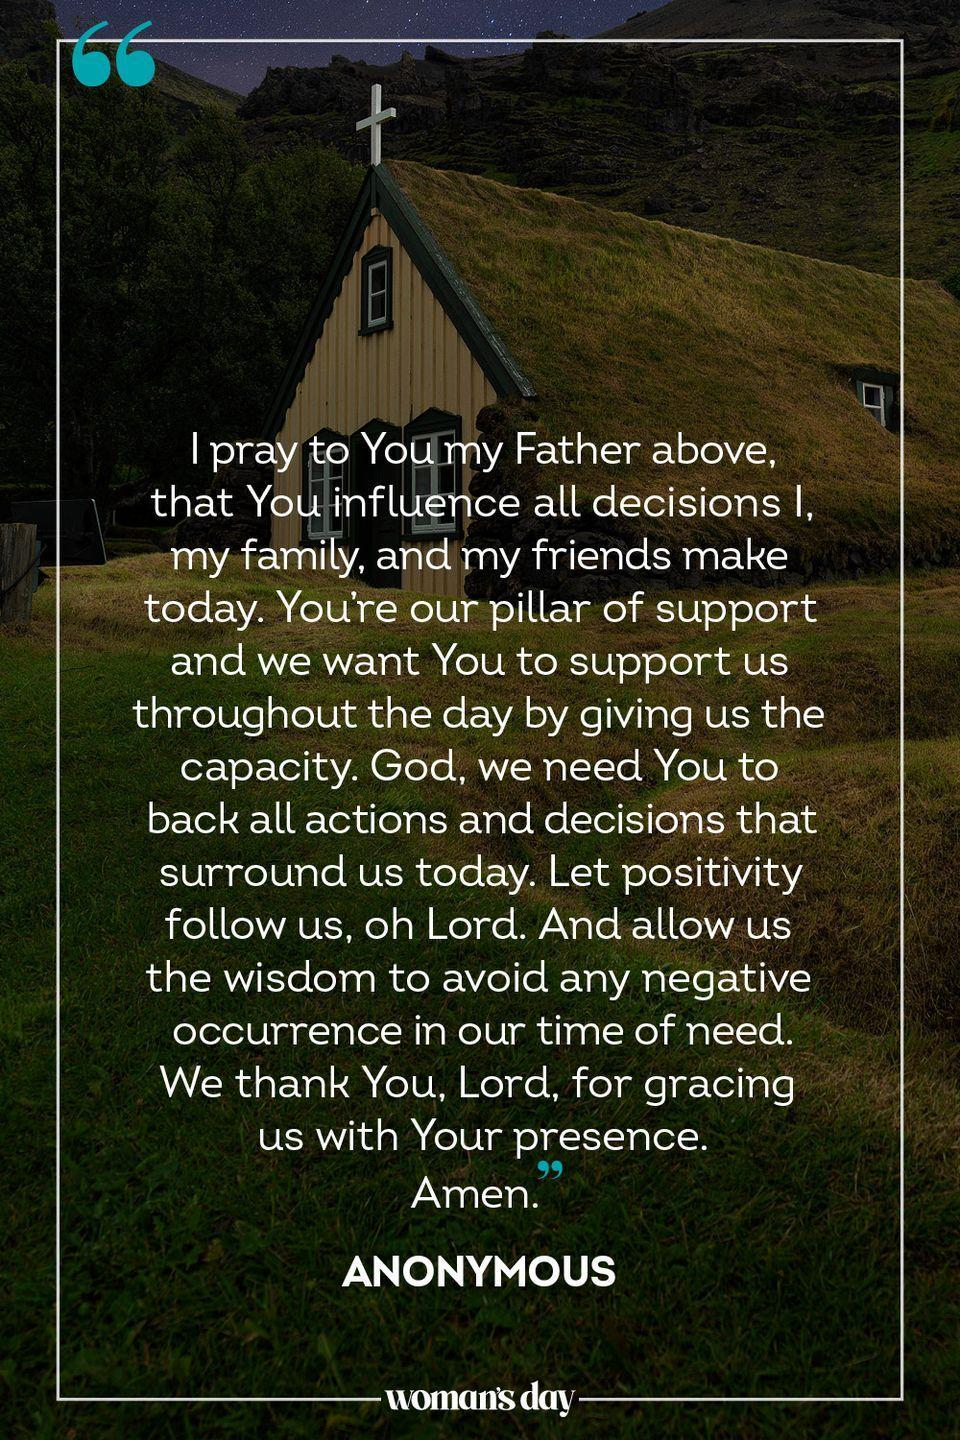 """<p>I pray to You my Father above, that You influence all decisions I, my family, and my friends make today. You're our pillar of support and we want You to support us throughout the day by giving us the capacity. God, we need You to back all actions and decisions that surround us today. Let positivity follow us, oh Lord. And allow us the wisdom to avoid any negative occurrence in our time of need. We thank You, Lord, for gracing us with Your presence. </p><p>Amen.</p><p>— <a href=""""https://www.holylandprayer.com/prayer_for/powerful-prayers-for-today/"""" rel=""""nofollow noopener"""" target=""""_blank"""" data-ylk=""""slk:Anonymous"""" class=""""link rapid-noclick-resp"""">Anonymous</a></p>"""